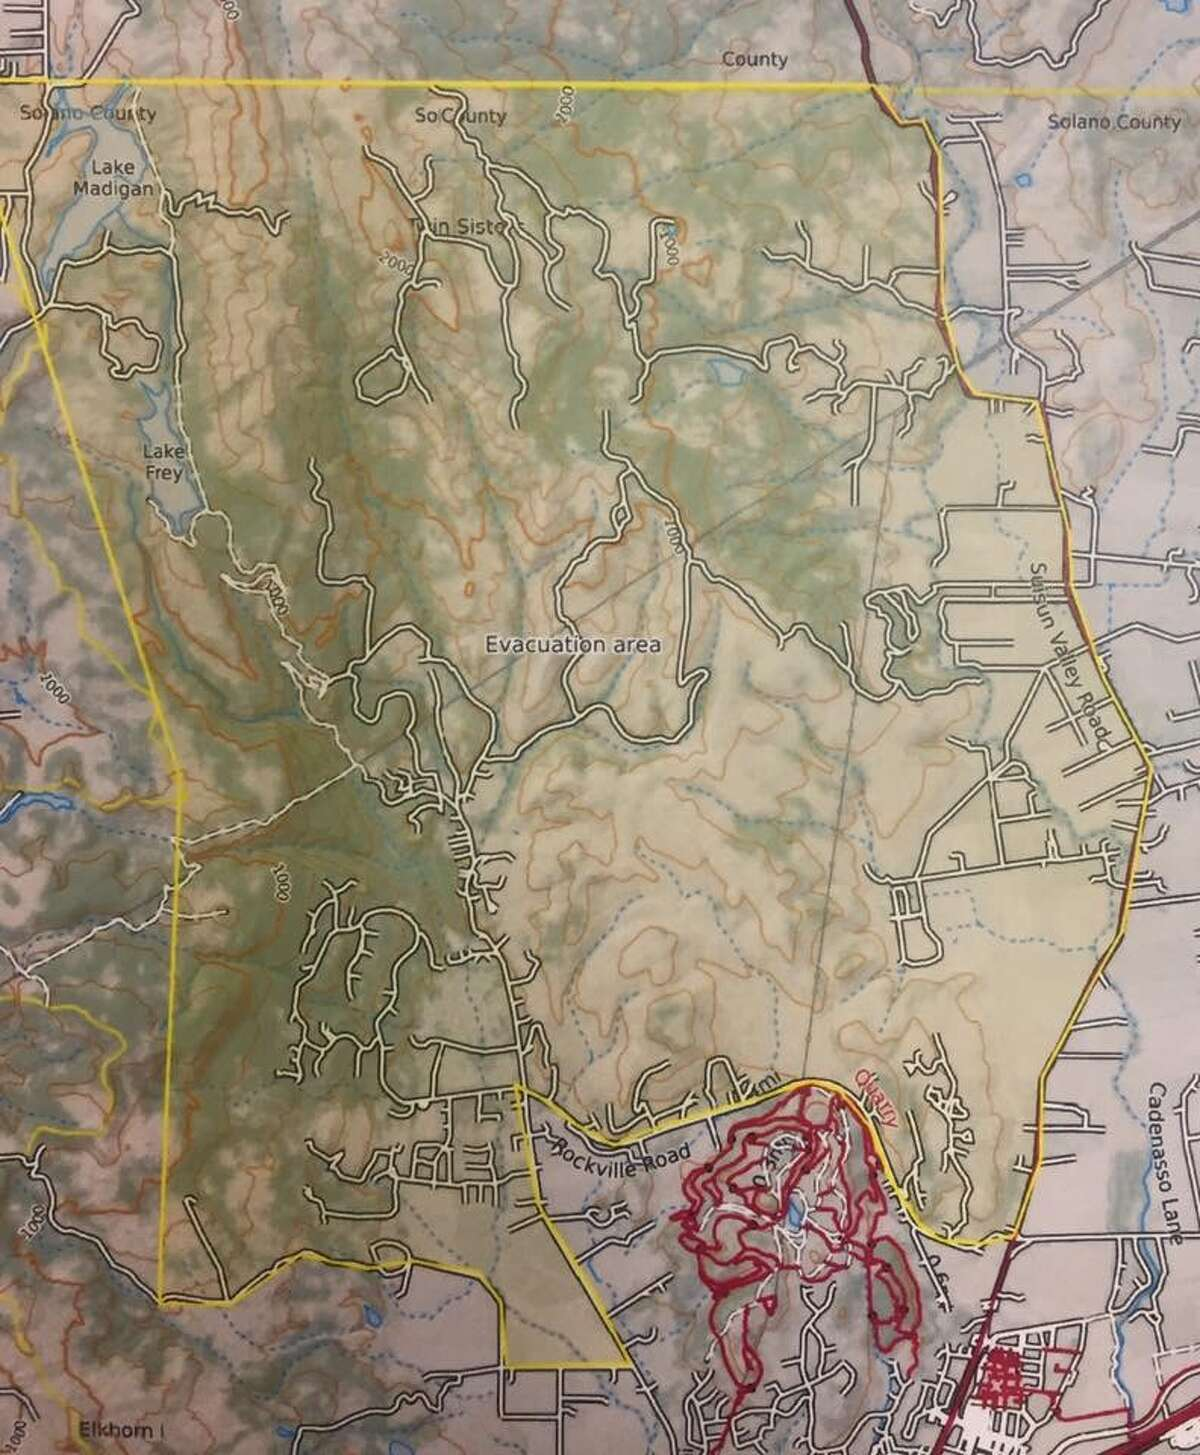 Authorities issued a mandatory evacuation order late on Monday, October 9, 2017. The order affects parts of the Green Valley area west of Green Valley Road near Fairfield, California.